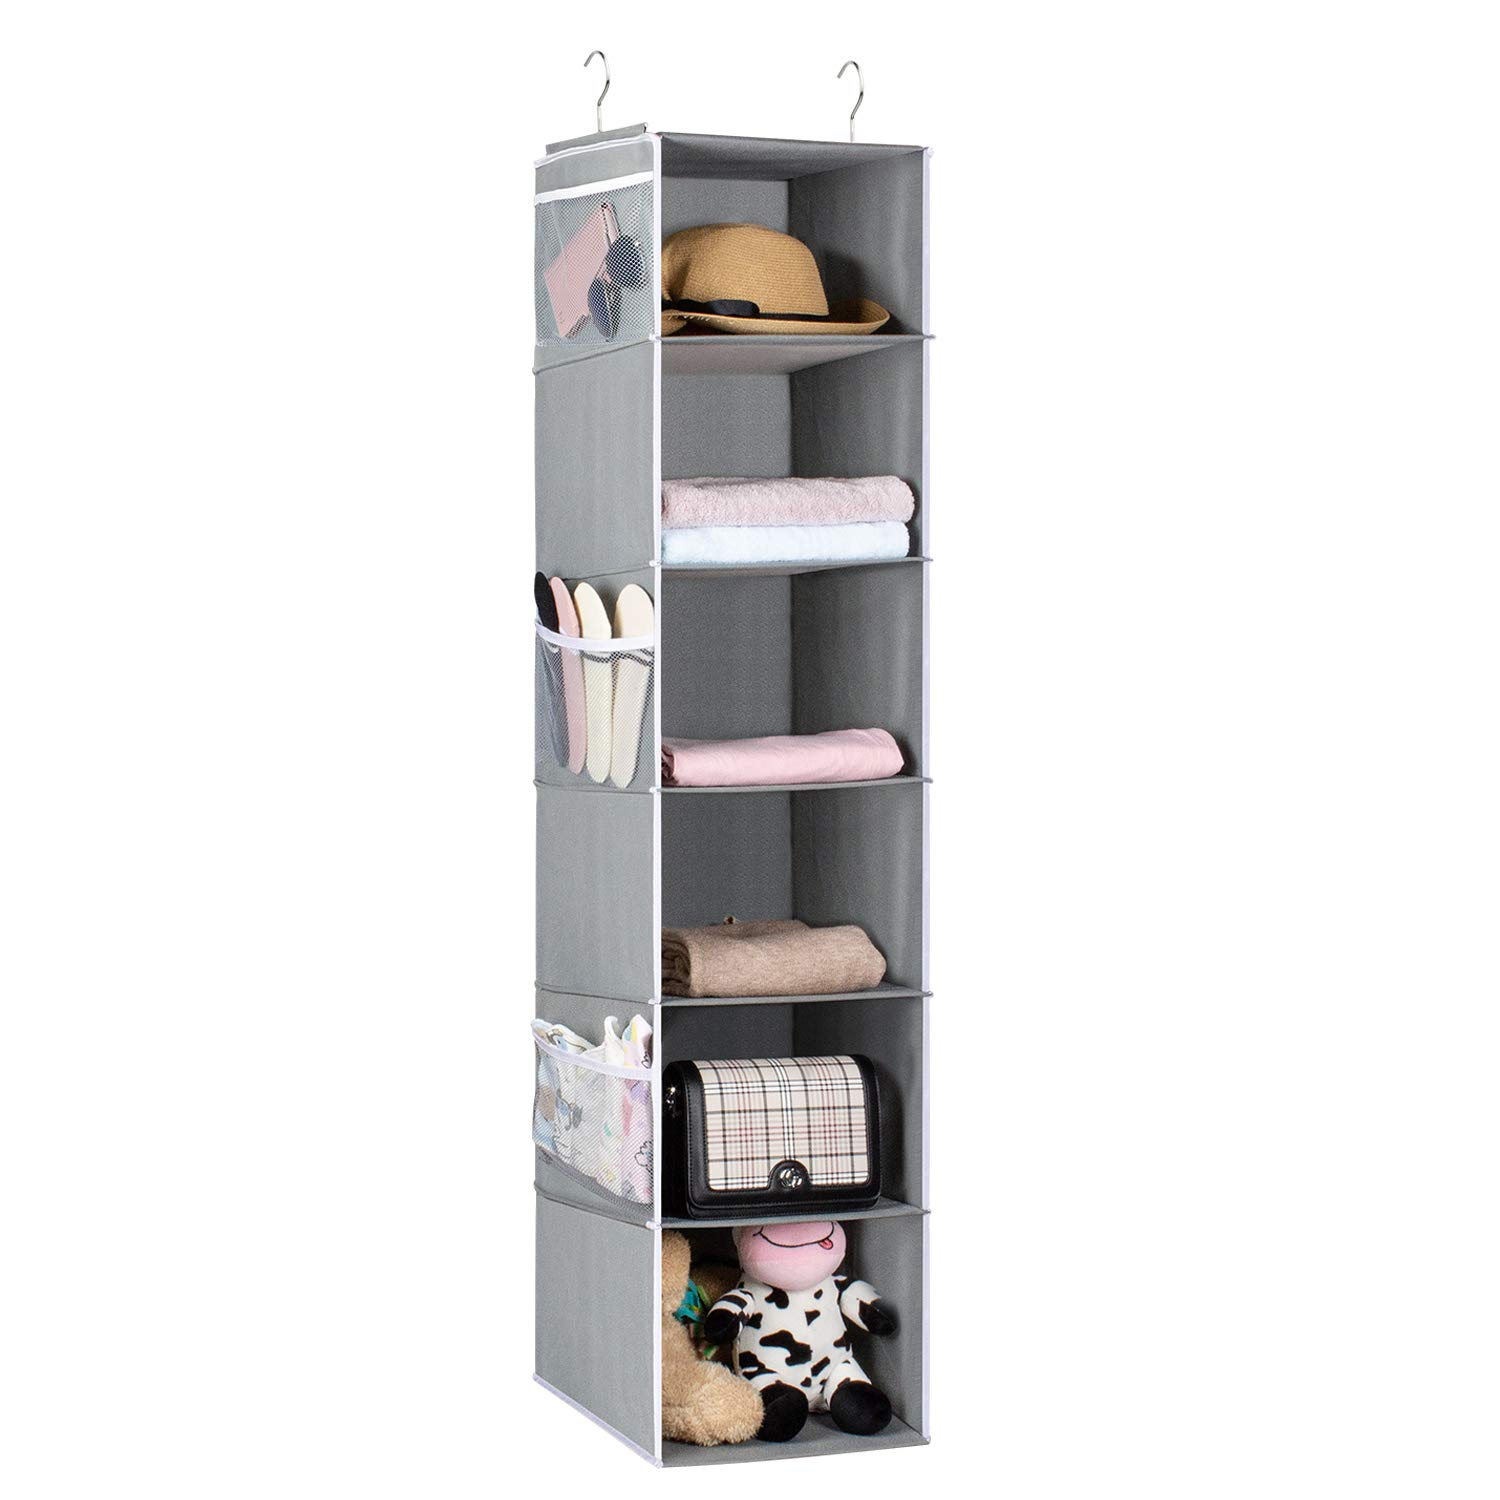 Univivi Hanging Shelf Wardrobe Organiser,6 Tiers Hanging Closet Organizers and Storage with 6 Side Mesh Pockets,Foldable, Gray